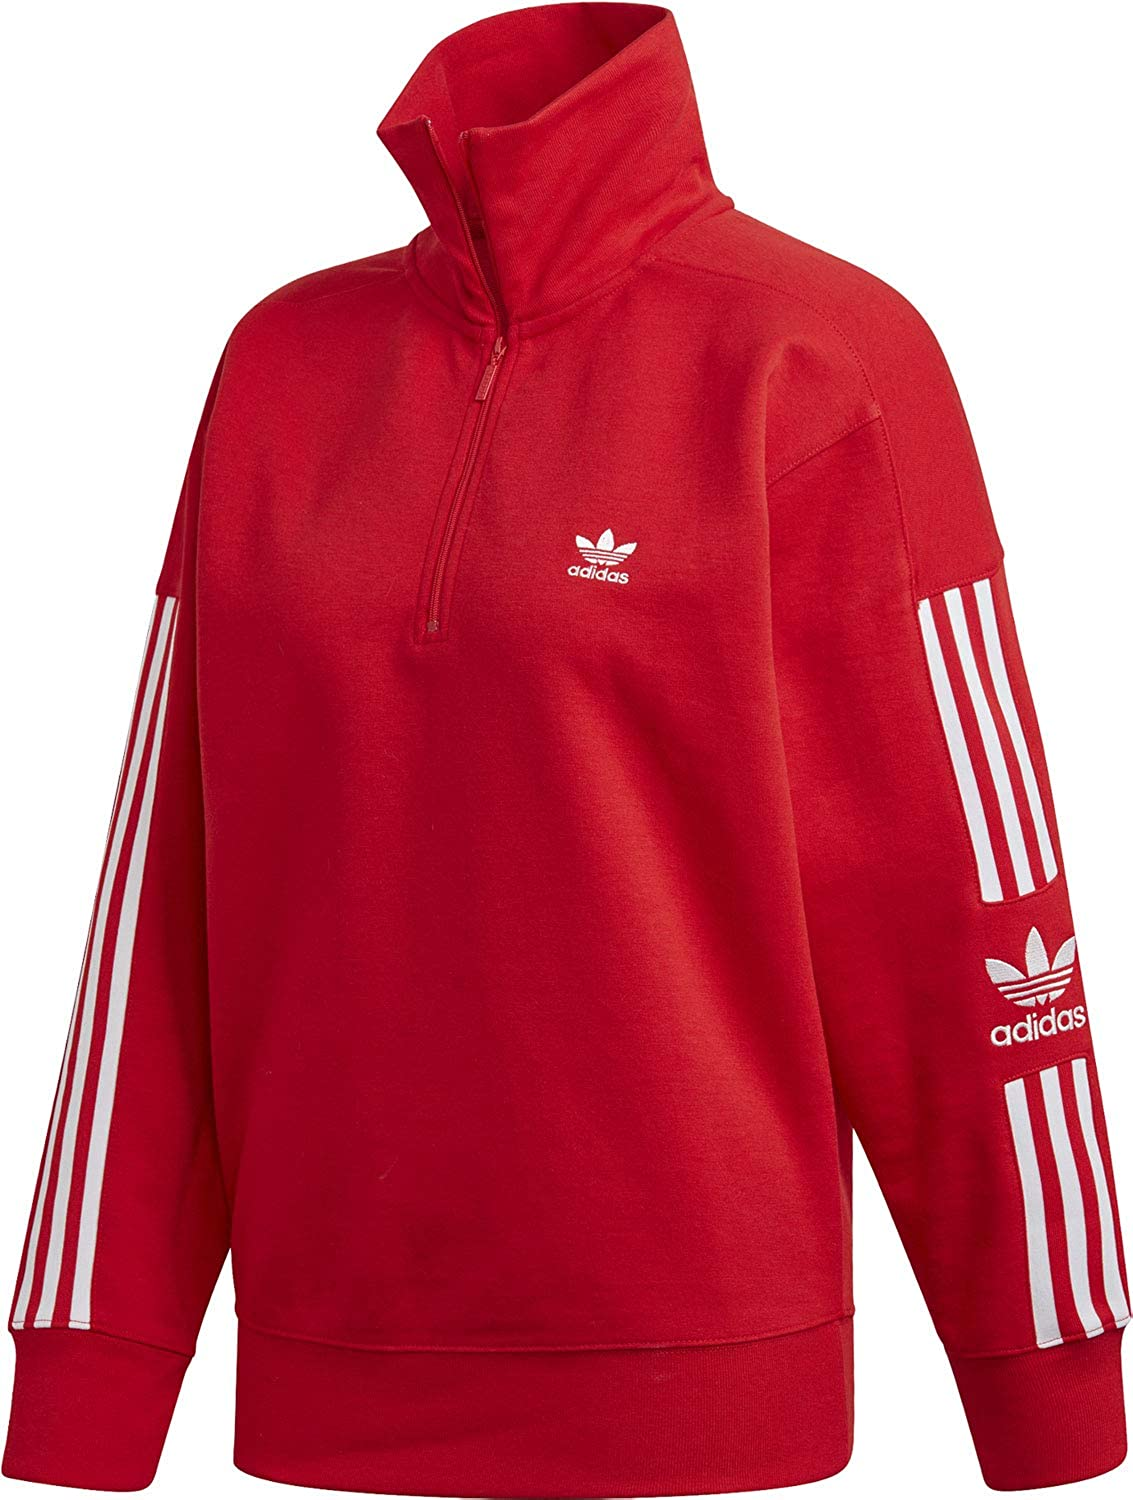 adidas Originals Damen Pullover Lock Up rot 34: